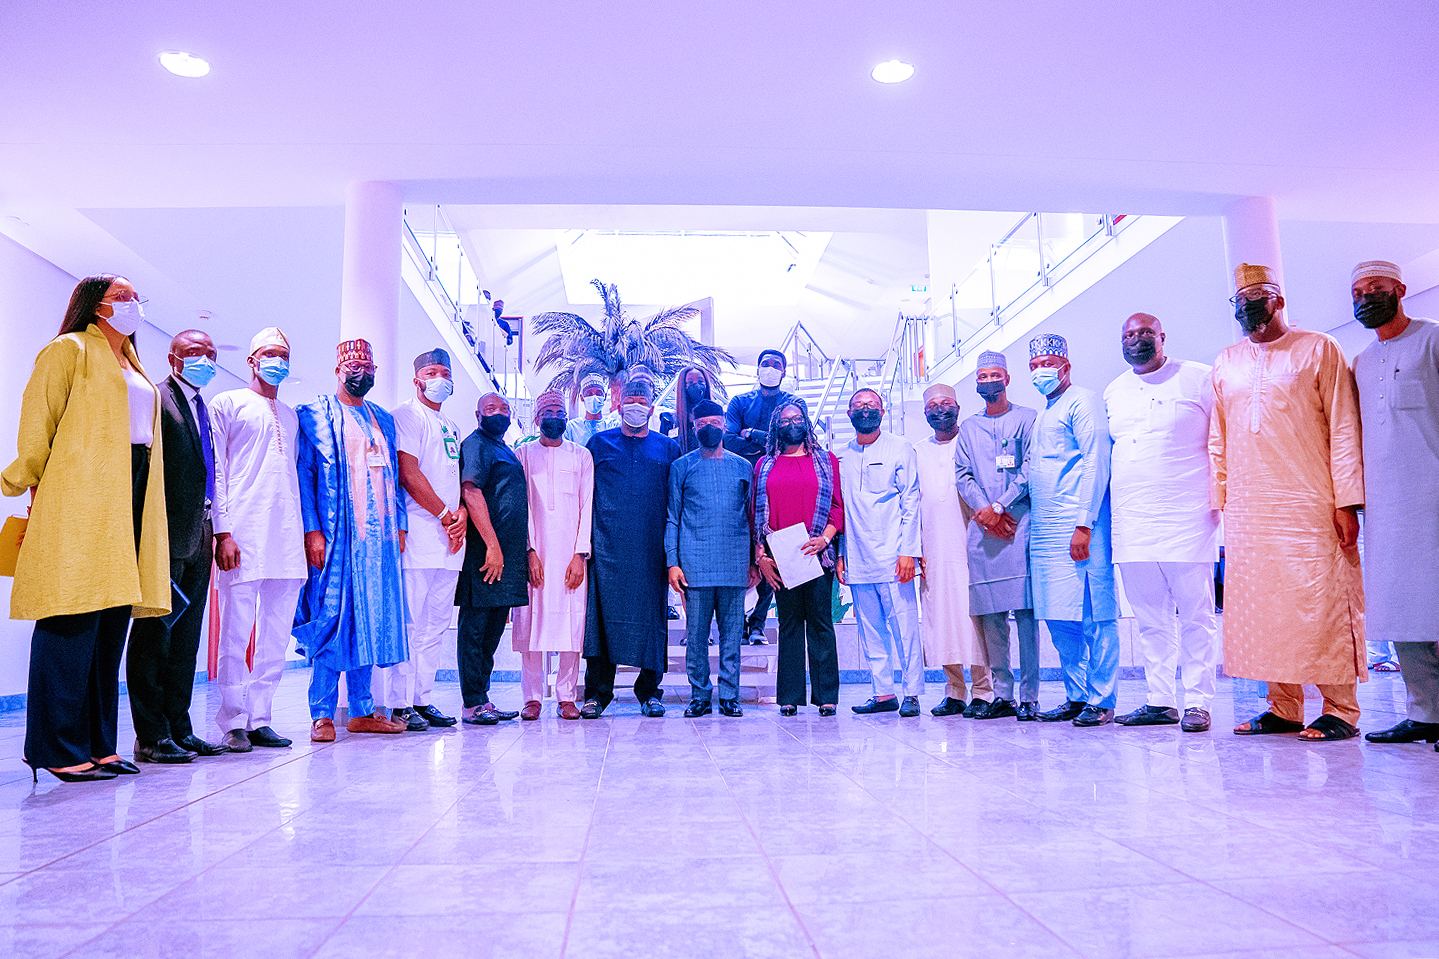 VP Osinbajo Receives Report Of APC National Youth Conference On 16/08/2021